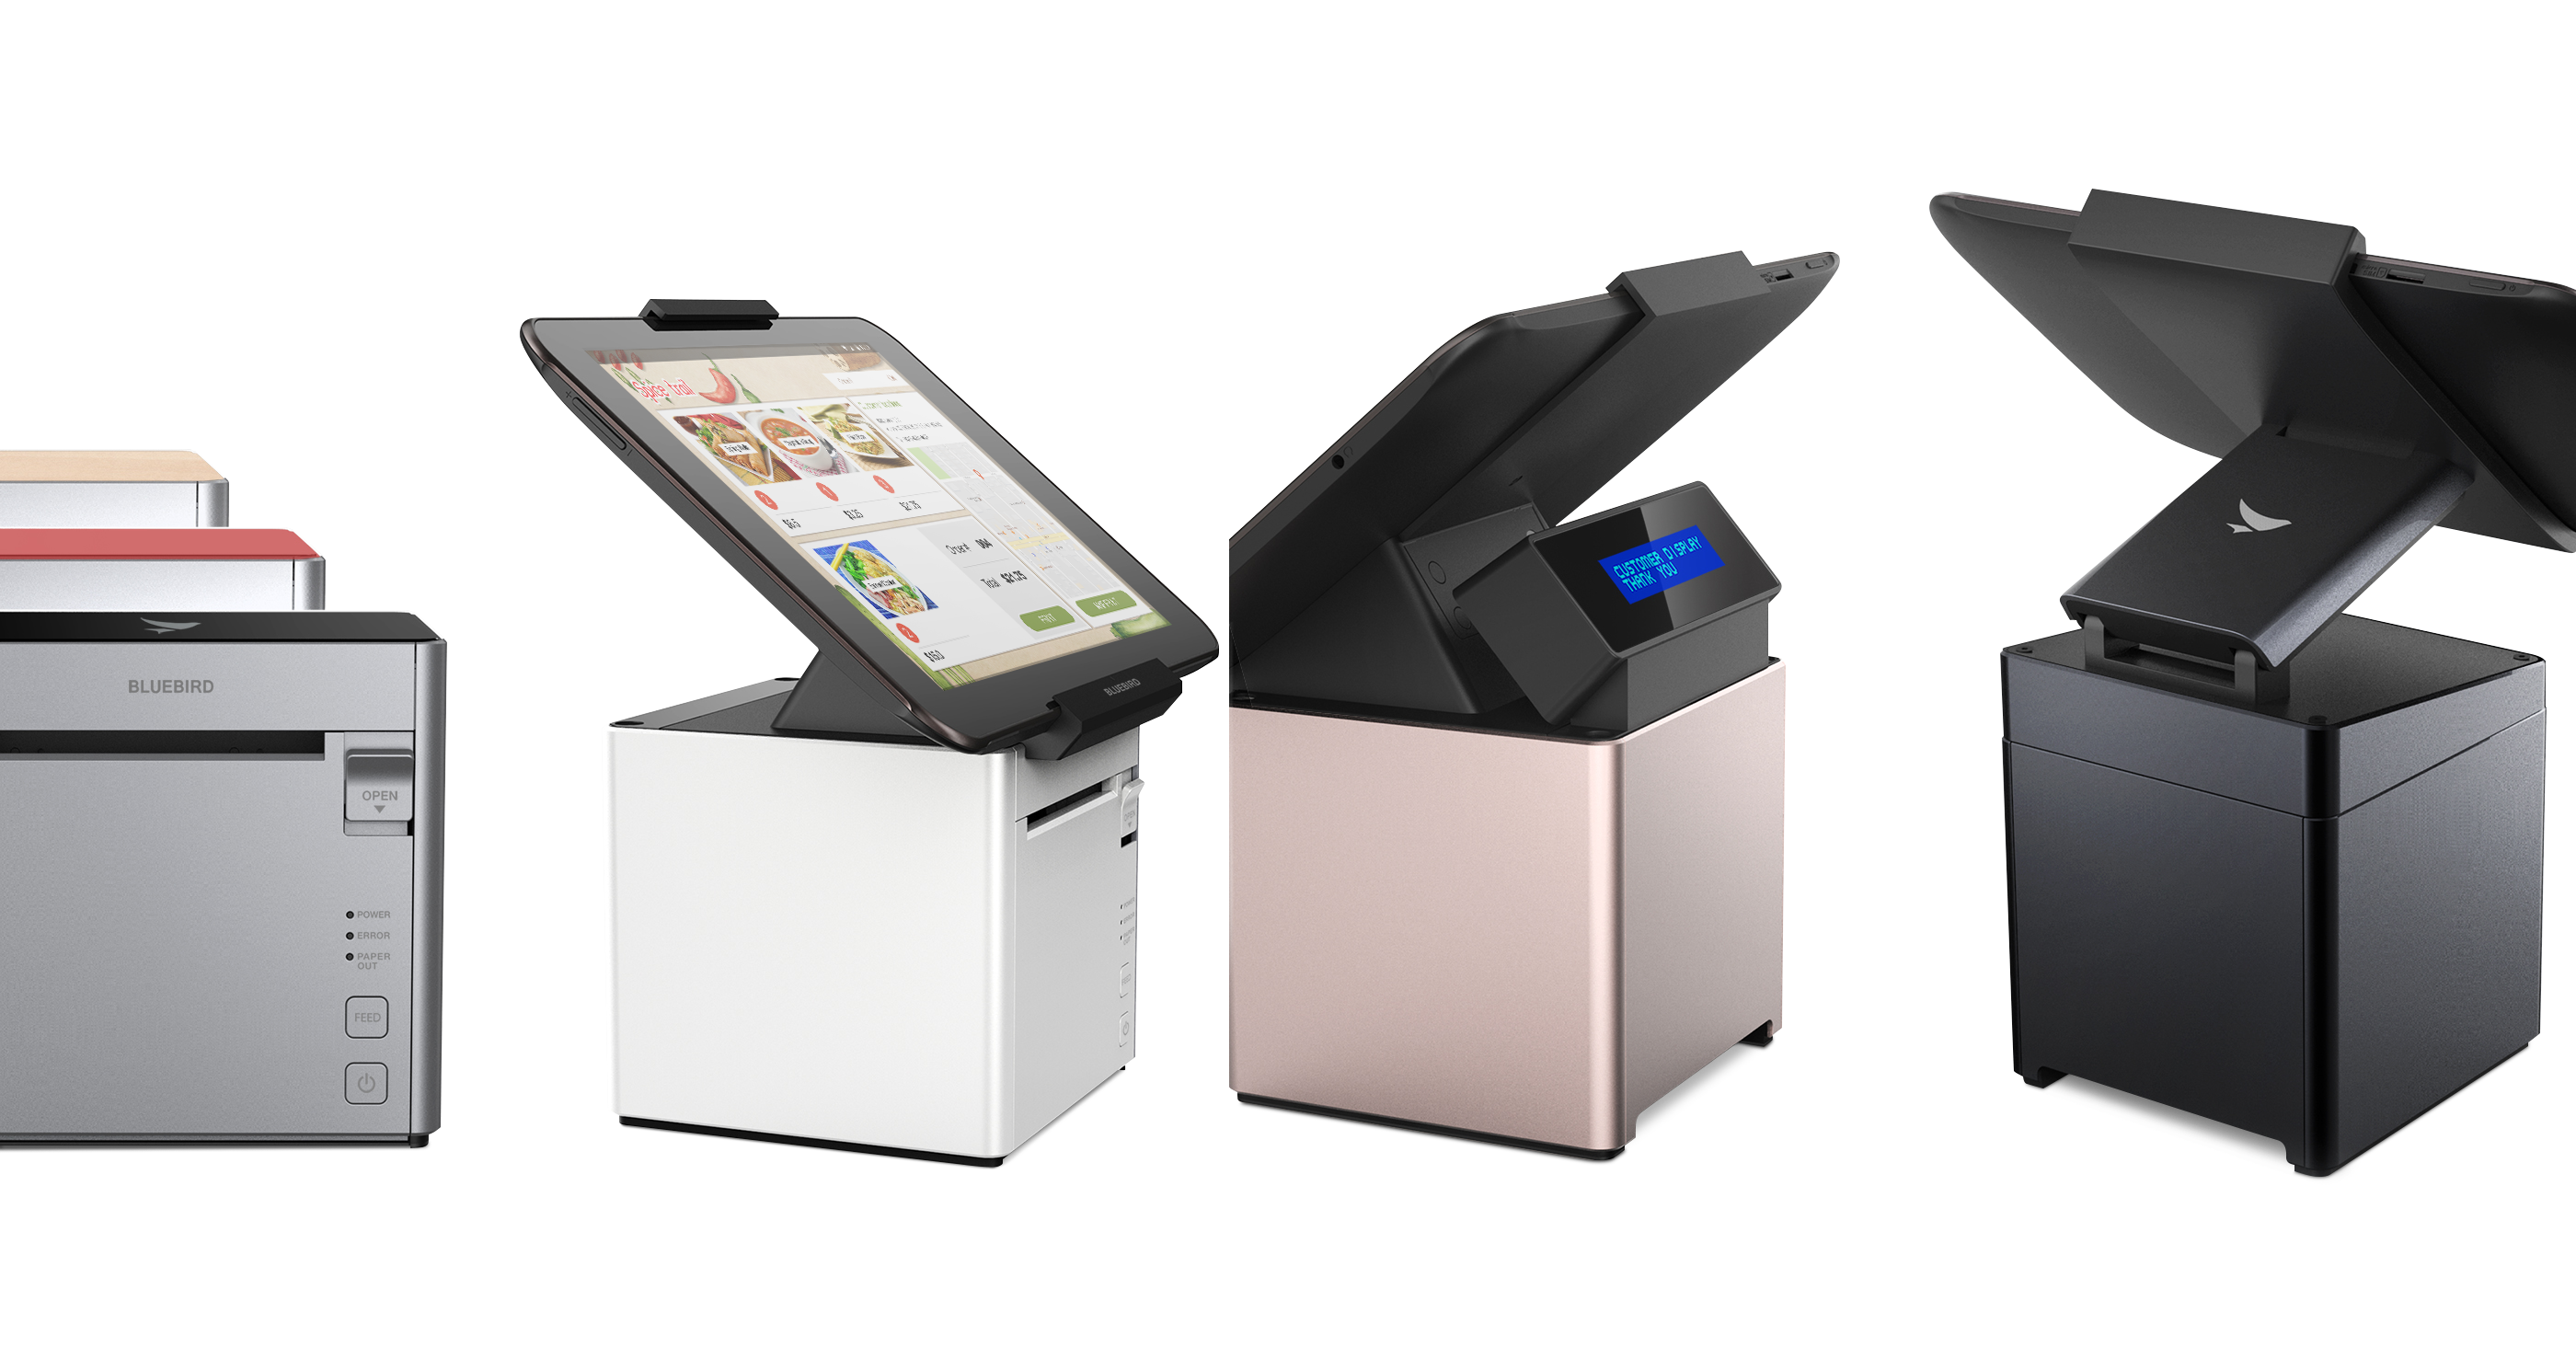 Bluebird s pt100 tablet pos wins 2017 if design award for for Innovate product design